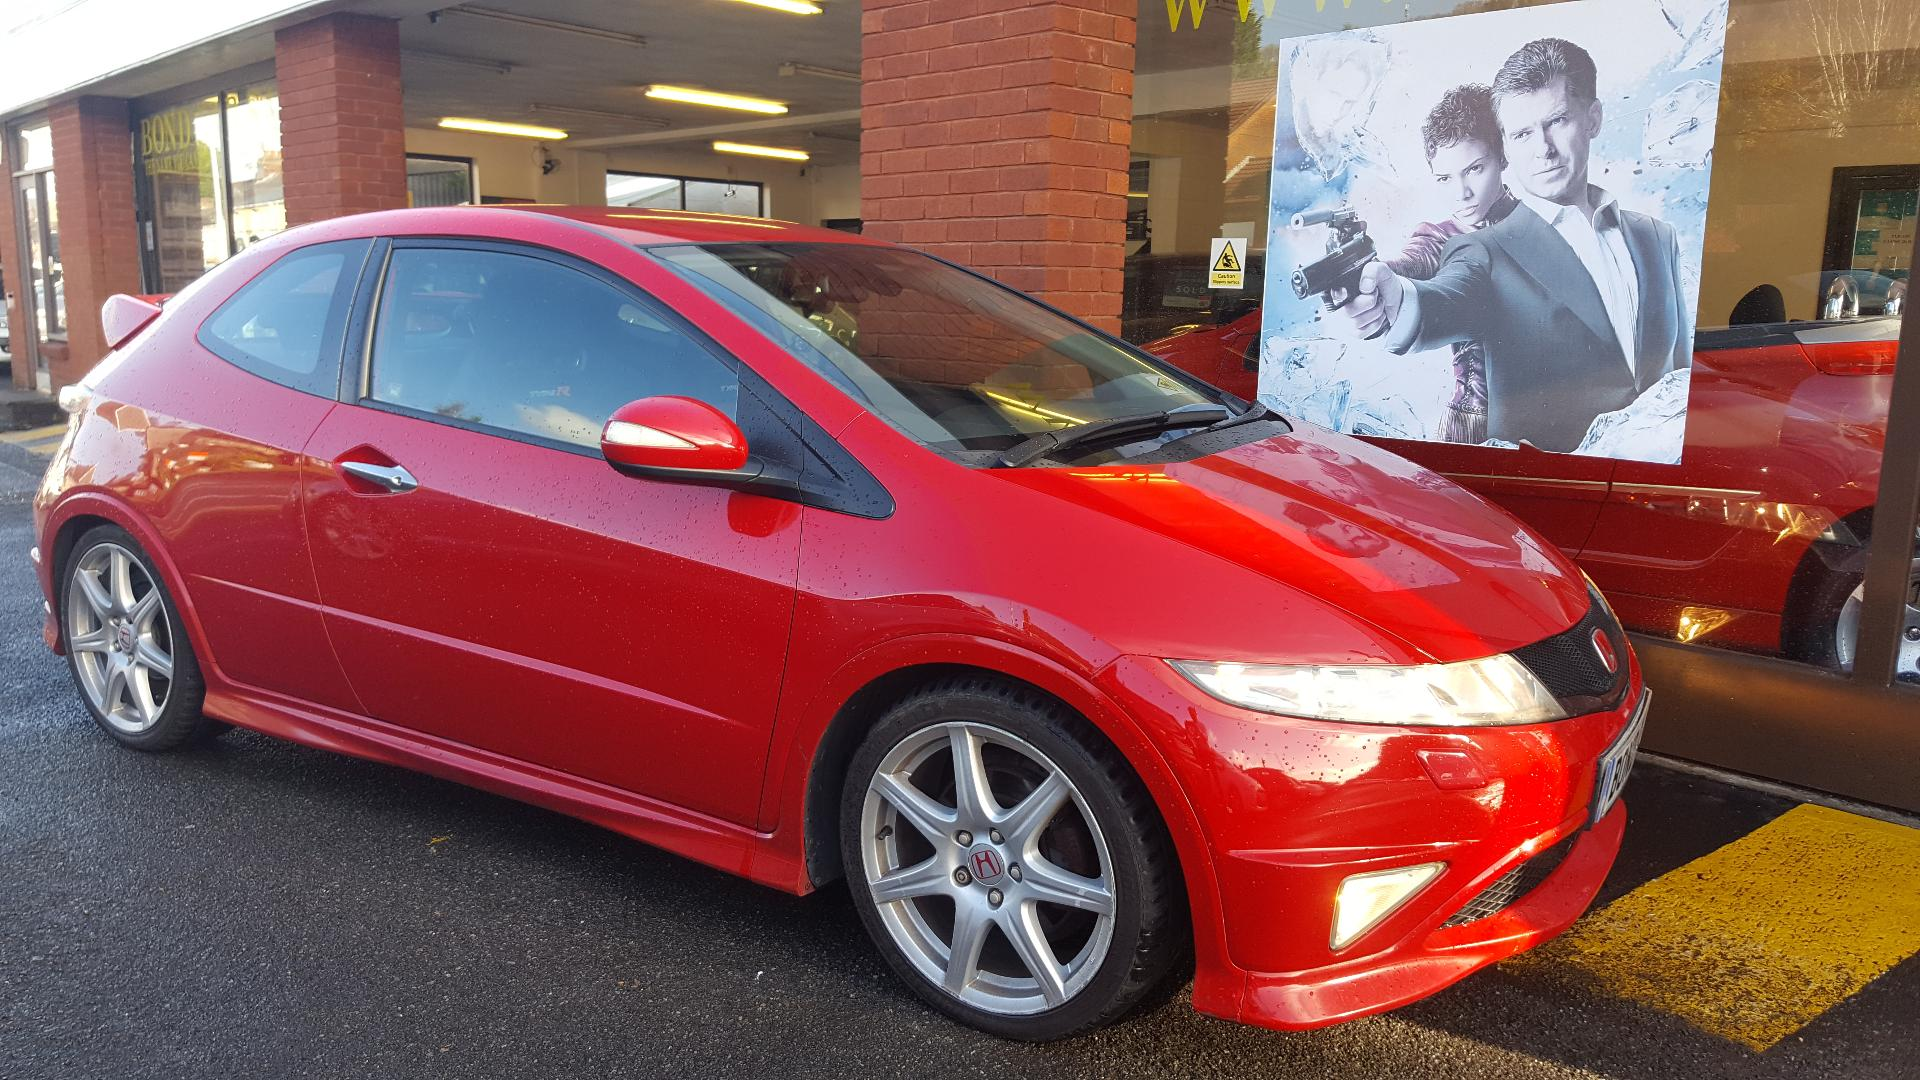 2009 (59) Honda Civic 2.0 i-VTEC Type R GT 200 BHP Hot Hatch For Sale In Swansea, Glamorgan